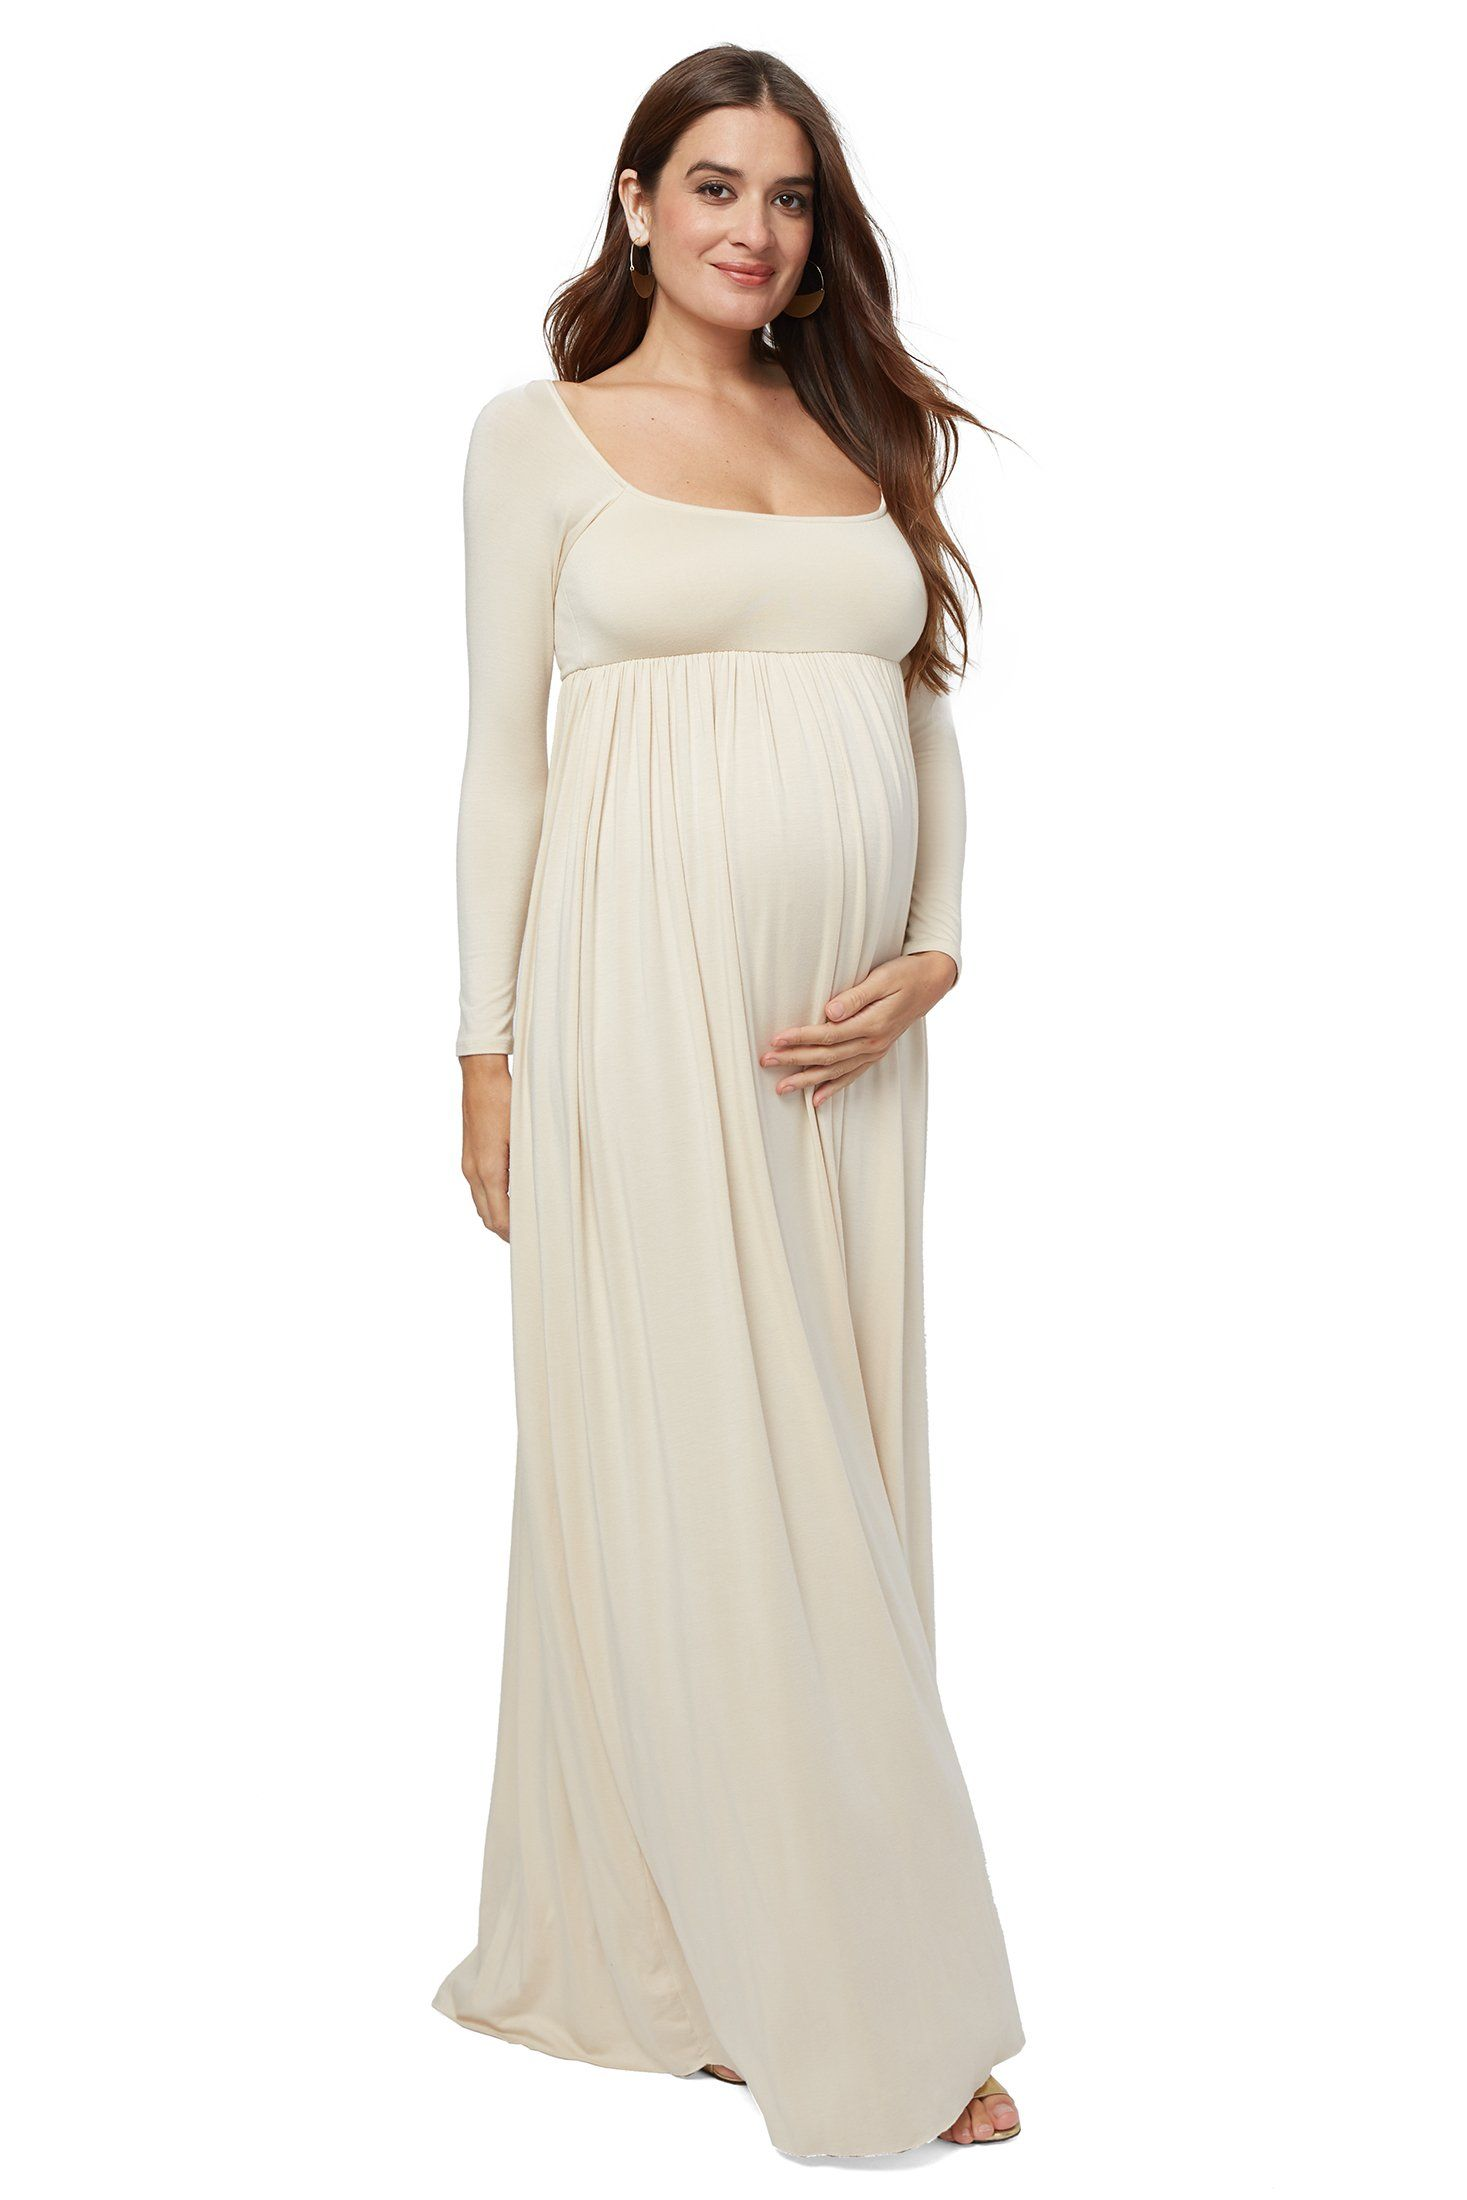 00511be1ef4cc ISA DRESS - CREAM Maternity but perfect for post baby portraits Pregnant  Wedding, Maternity Wedding